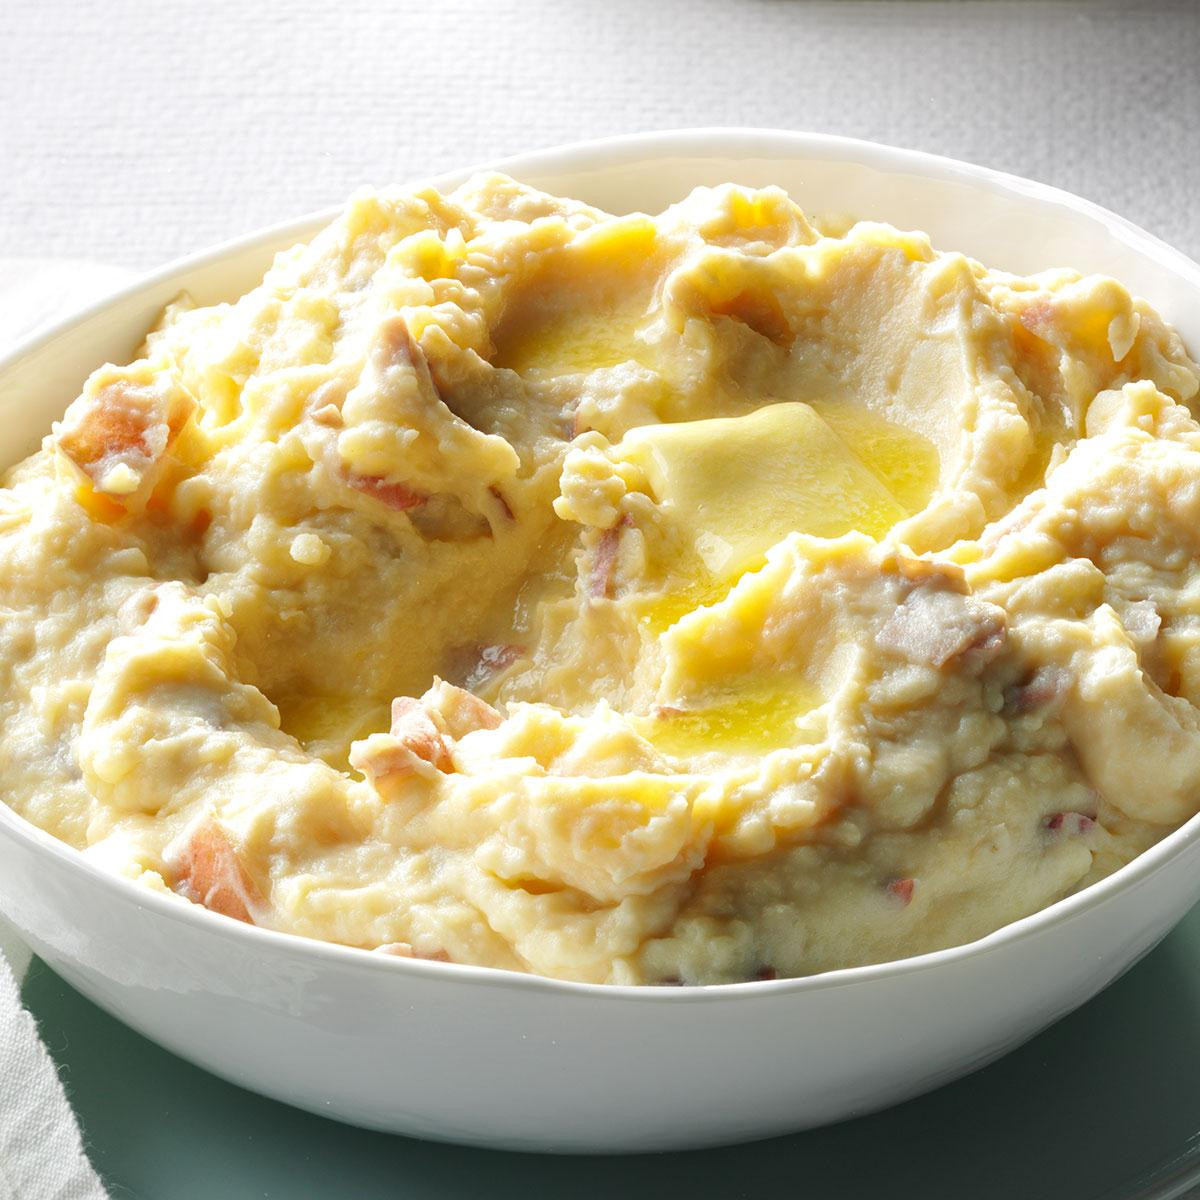 Parmesan Mashed Potatoes  Rich & Creamy Parmesan Mashed Potatoes Recipe